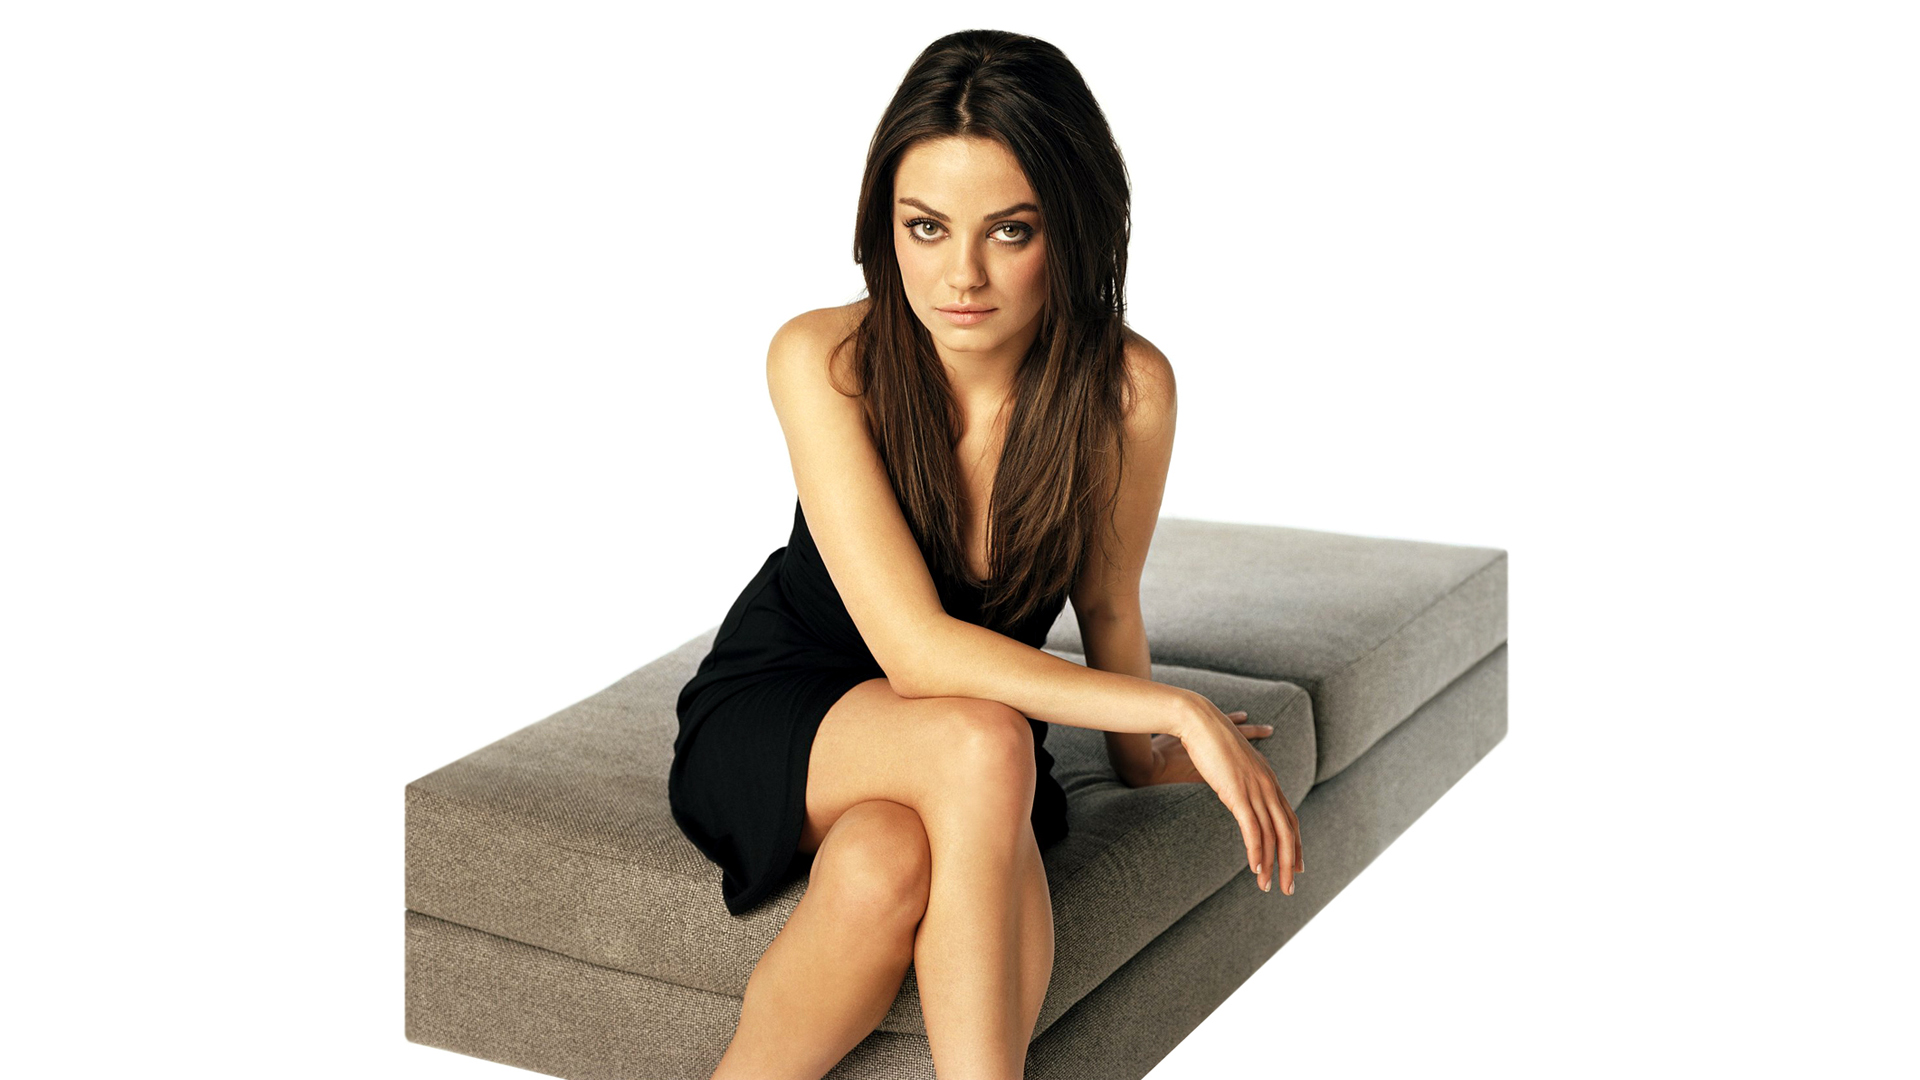 mila kunis hollywood famous actress pictures - all hd wallpapers